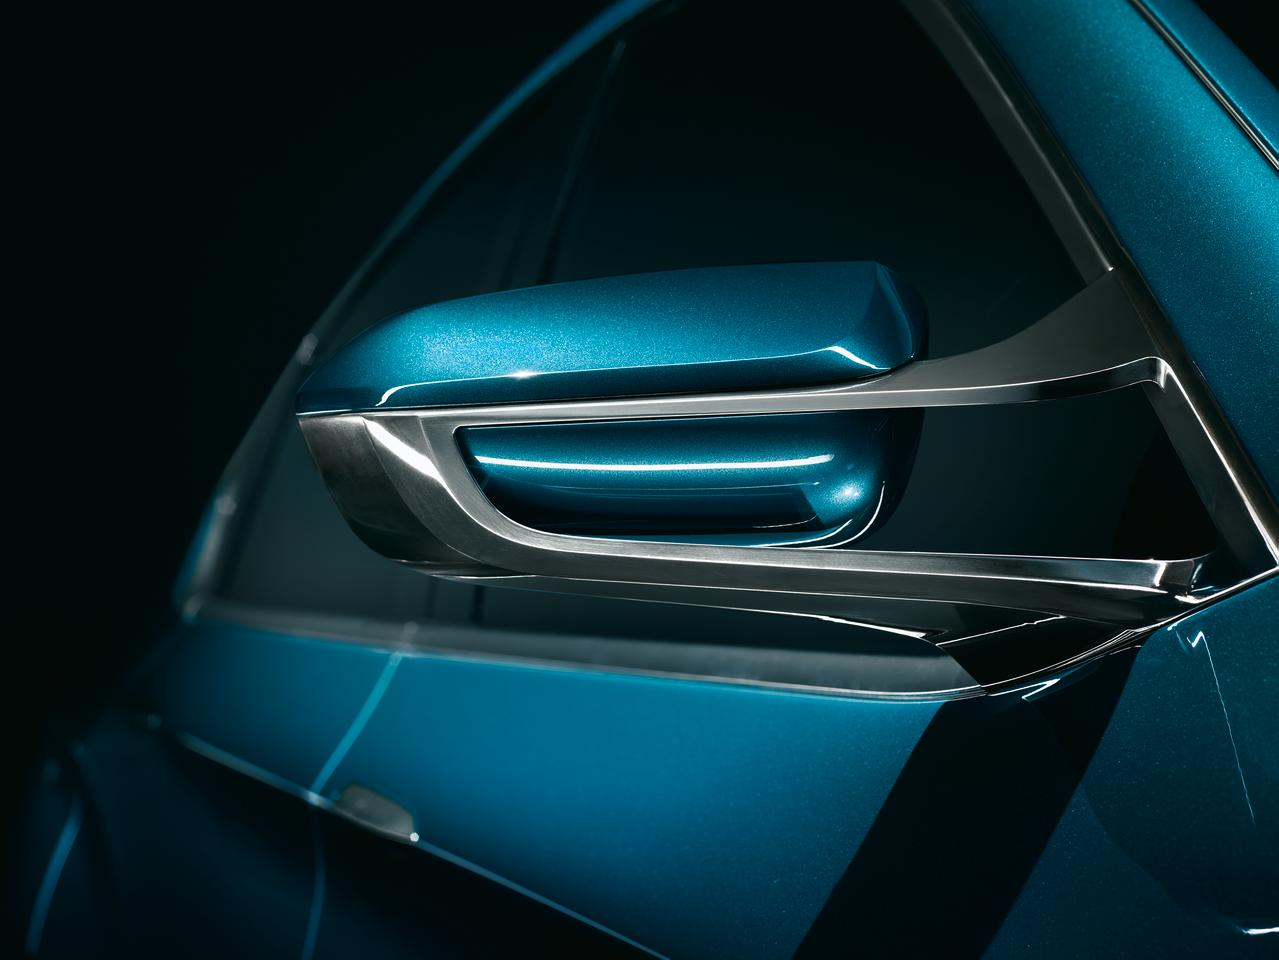 Evolved side mirrors set on twin-stalks, enhance airflow while looking good